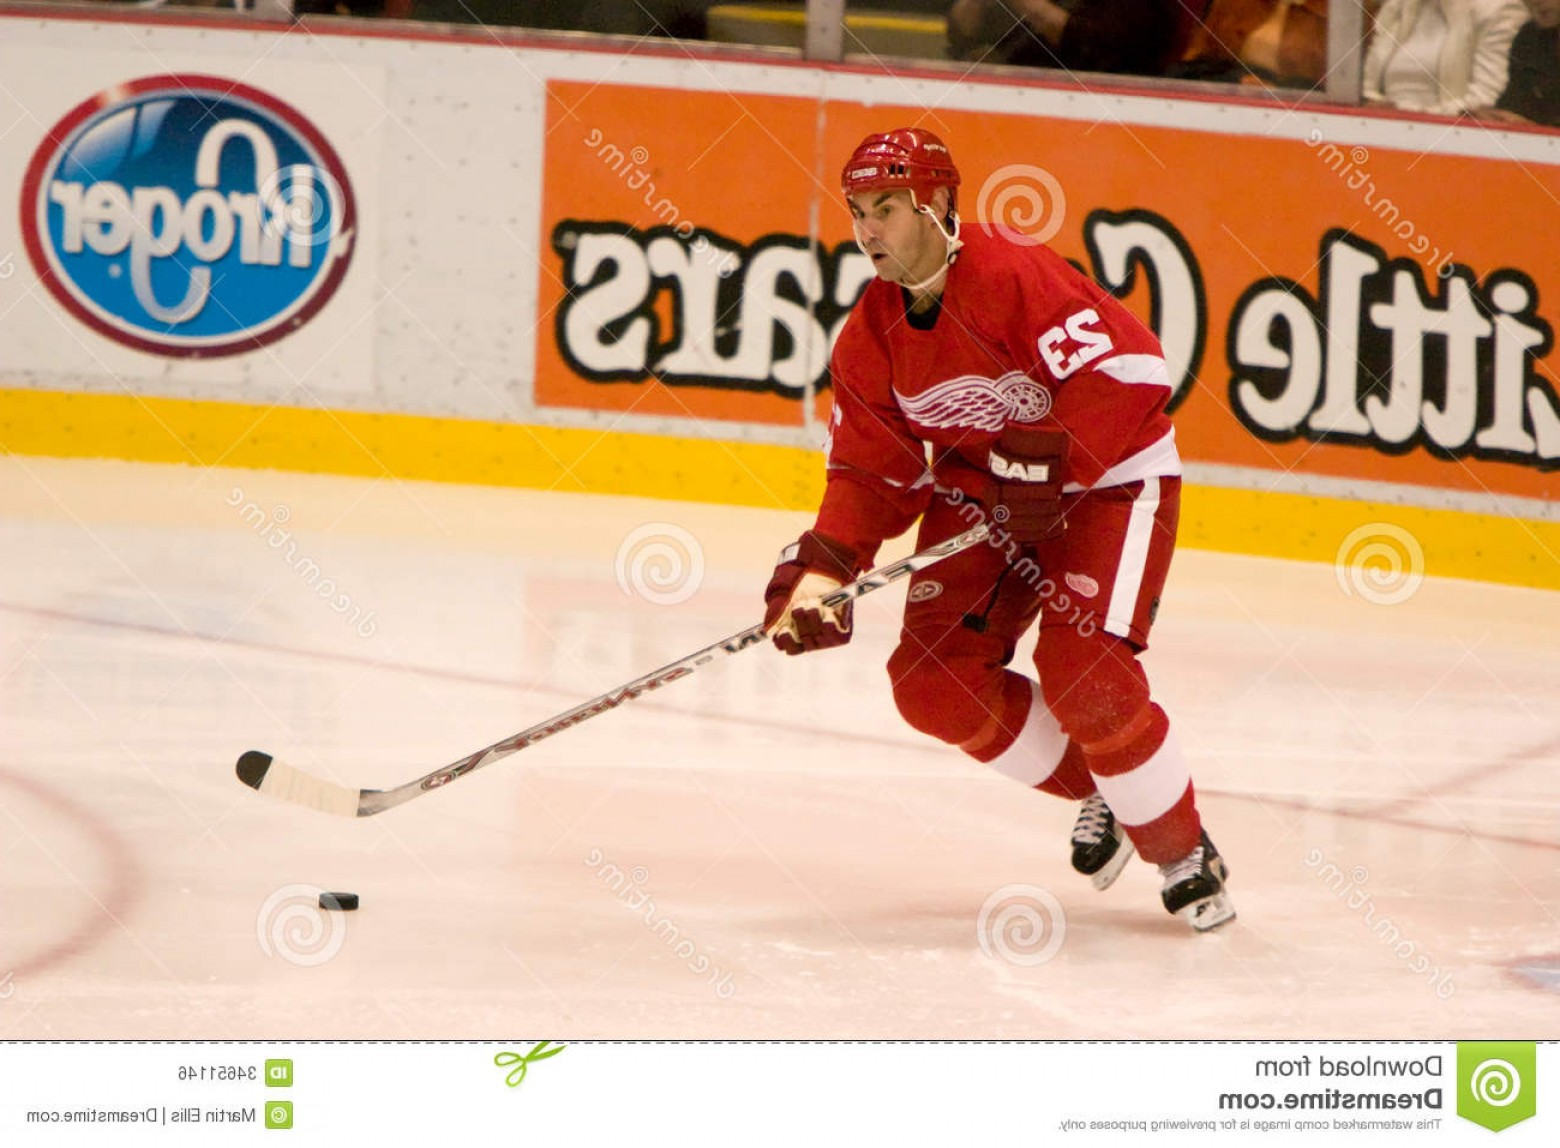 Detroit Red Wings Vector Art: Royalty Free Stock Image Mathieu Schneider Detroit Red Wings Controls Puck Game Against Phoenix Coyotes Joe Louis Arena Image